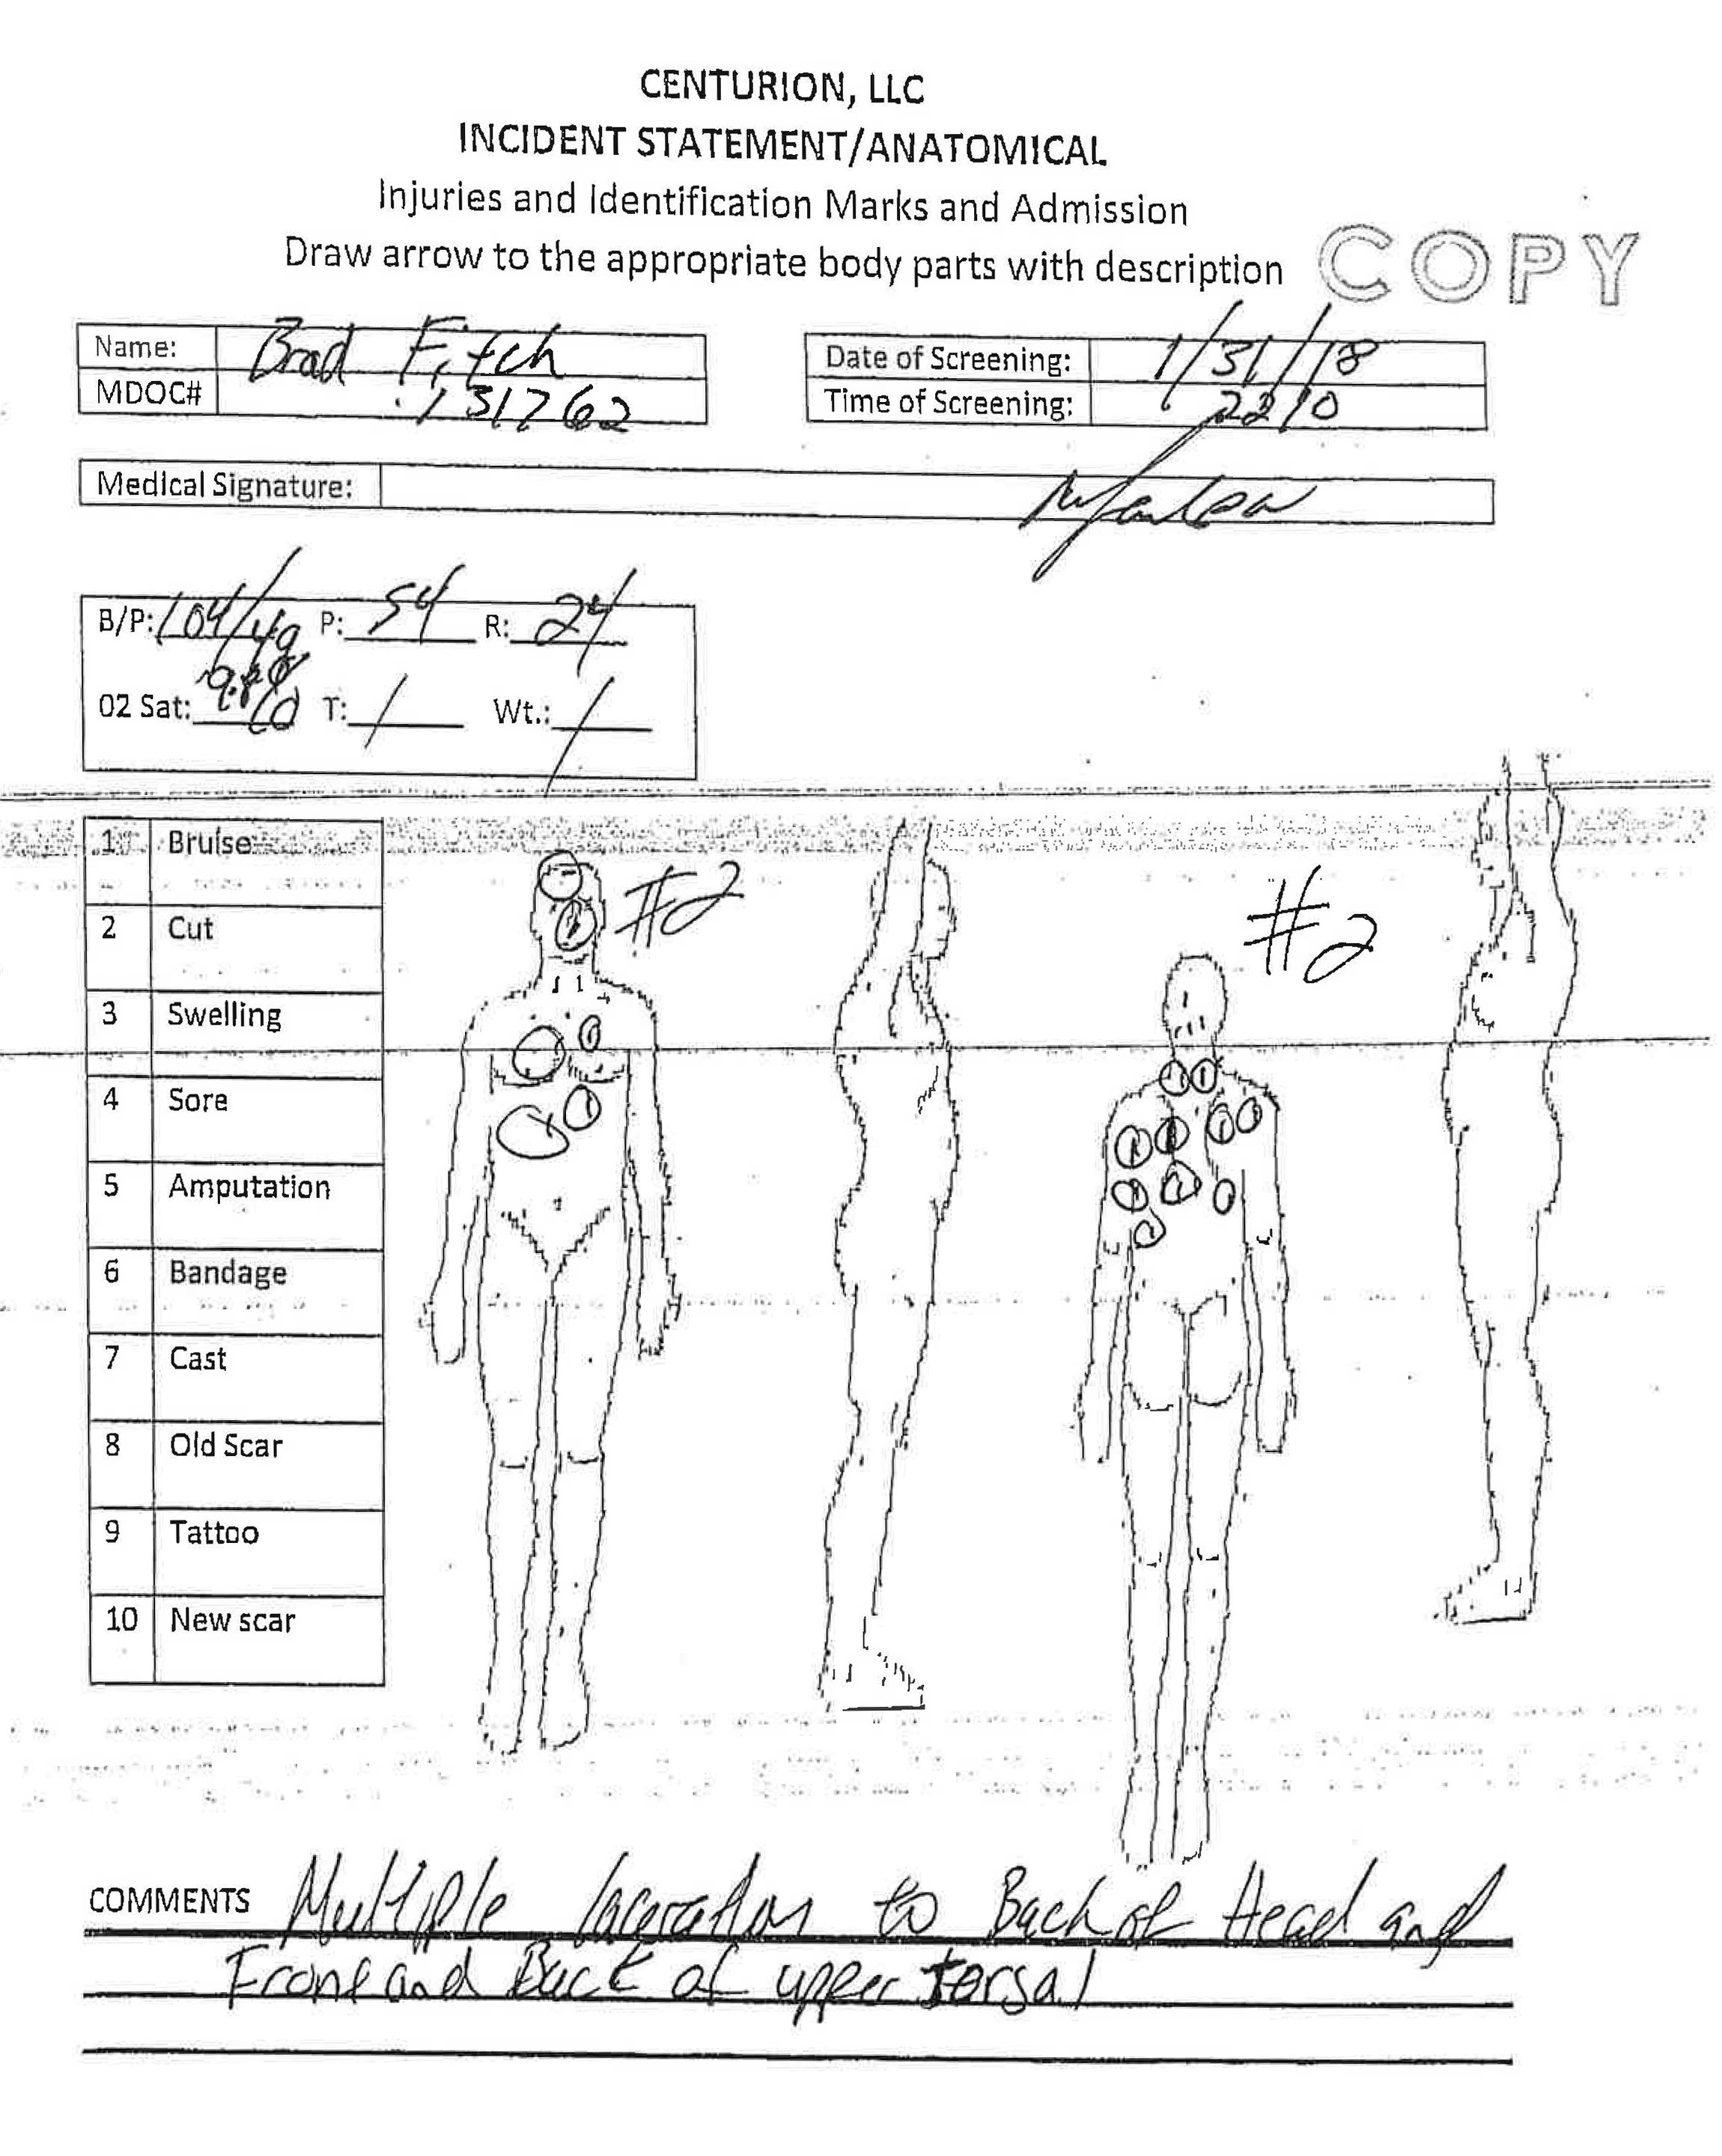 An anatomical diagram from the Mississippi Department of Correction's investigative report into Brad Fitch's death showed multiple lacerations to the back of the head and torso.   Mississippi Department of Corrections